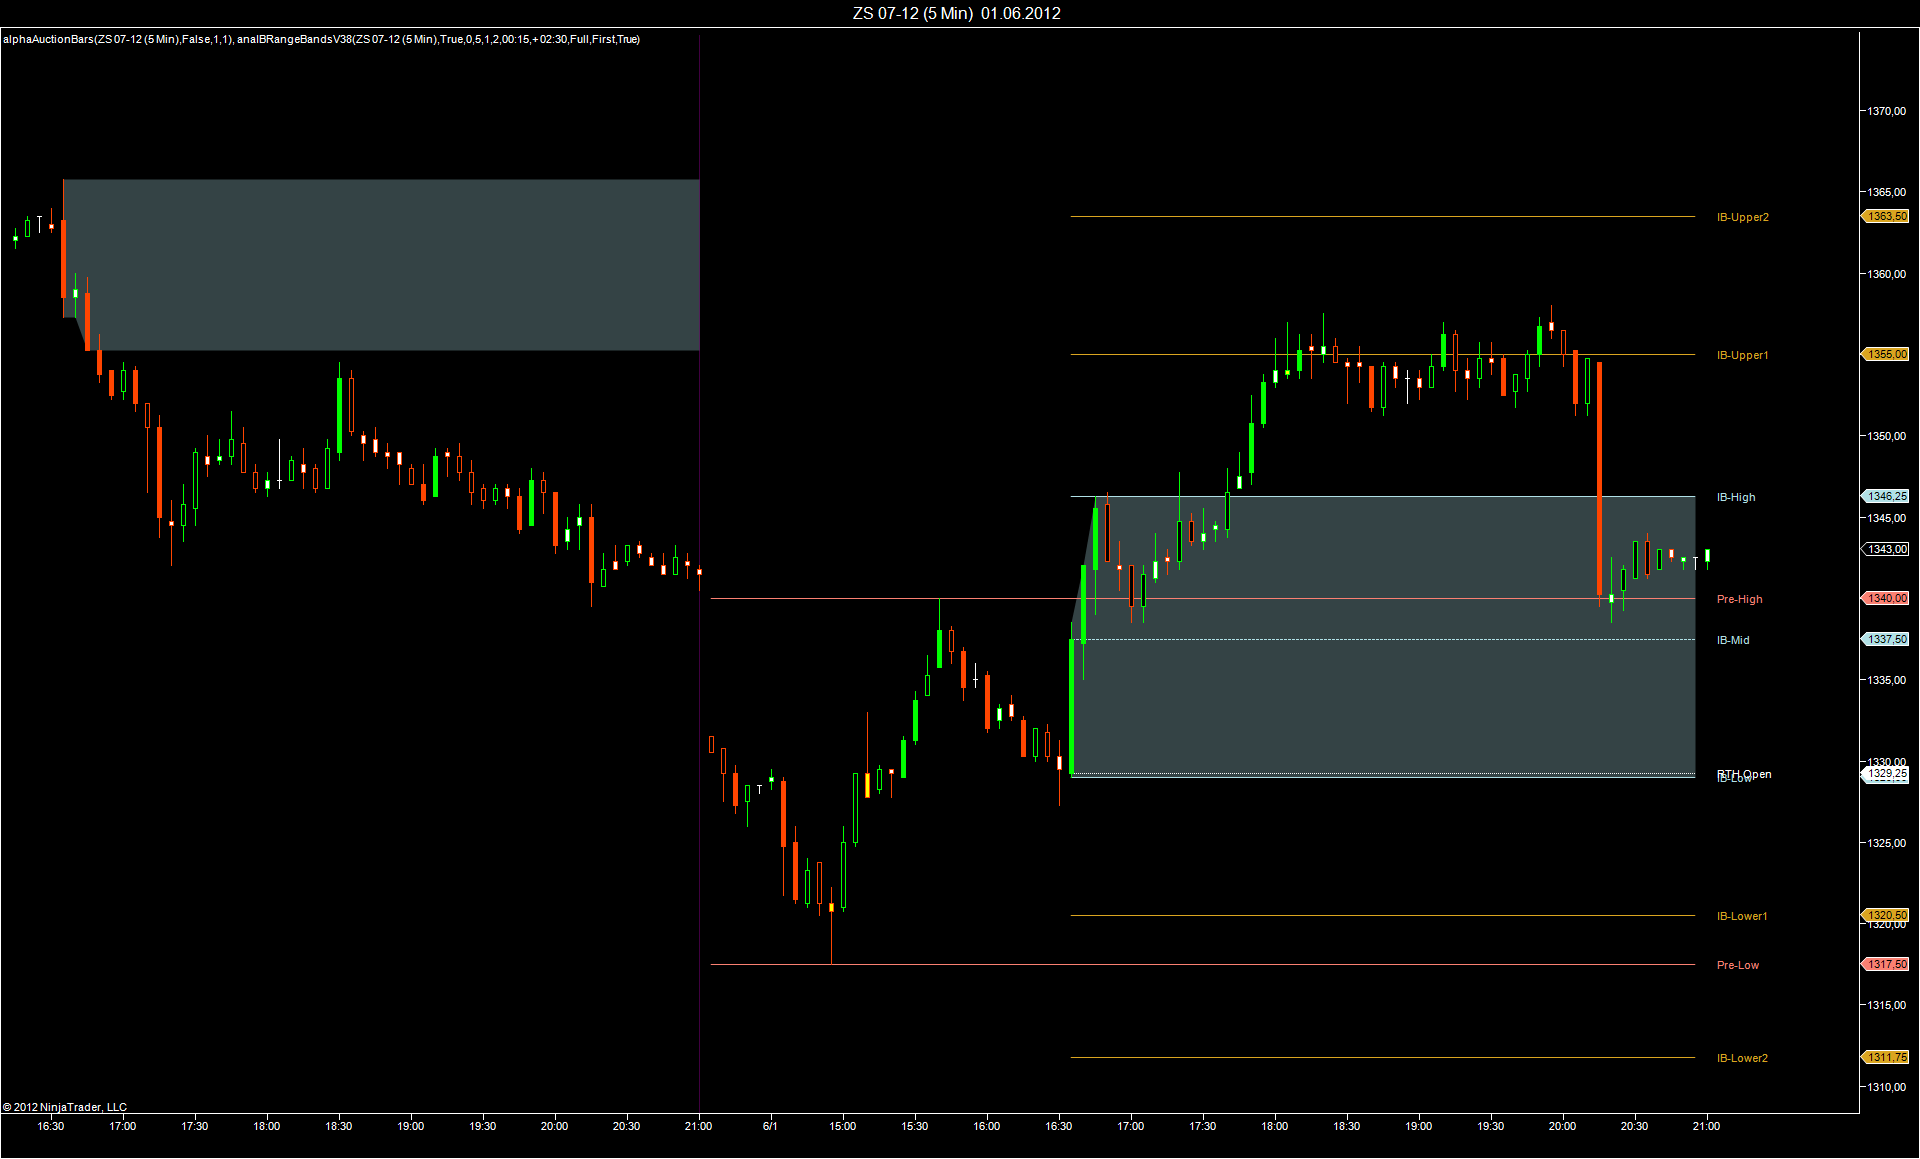 BT OPENING RANGE INDICATOR - without vertical lines at session